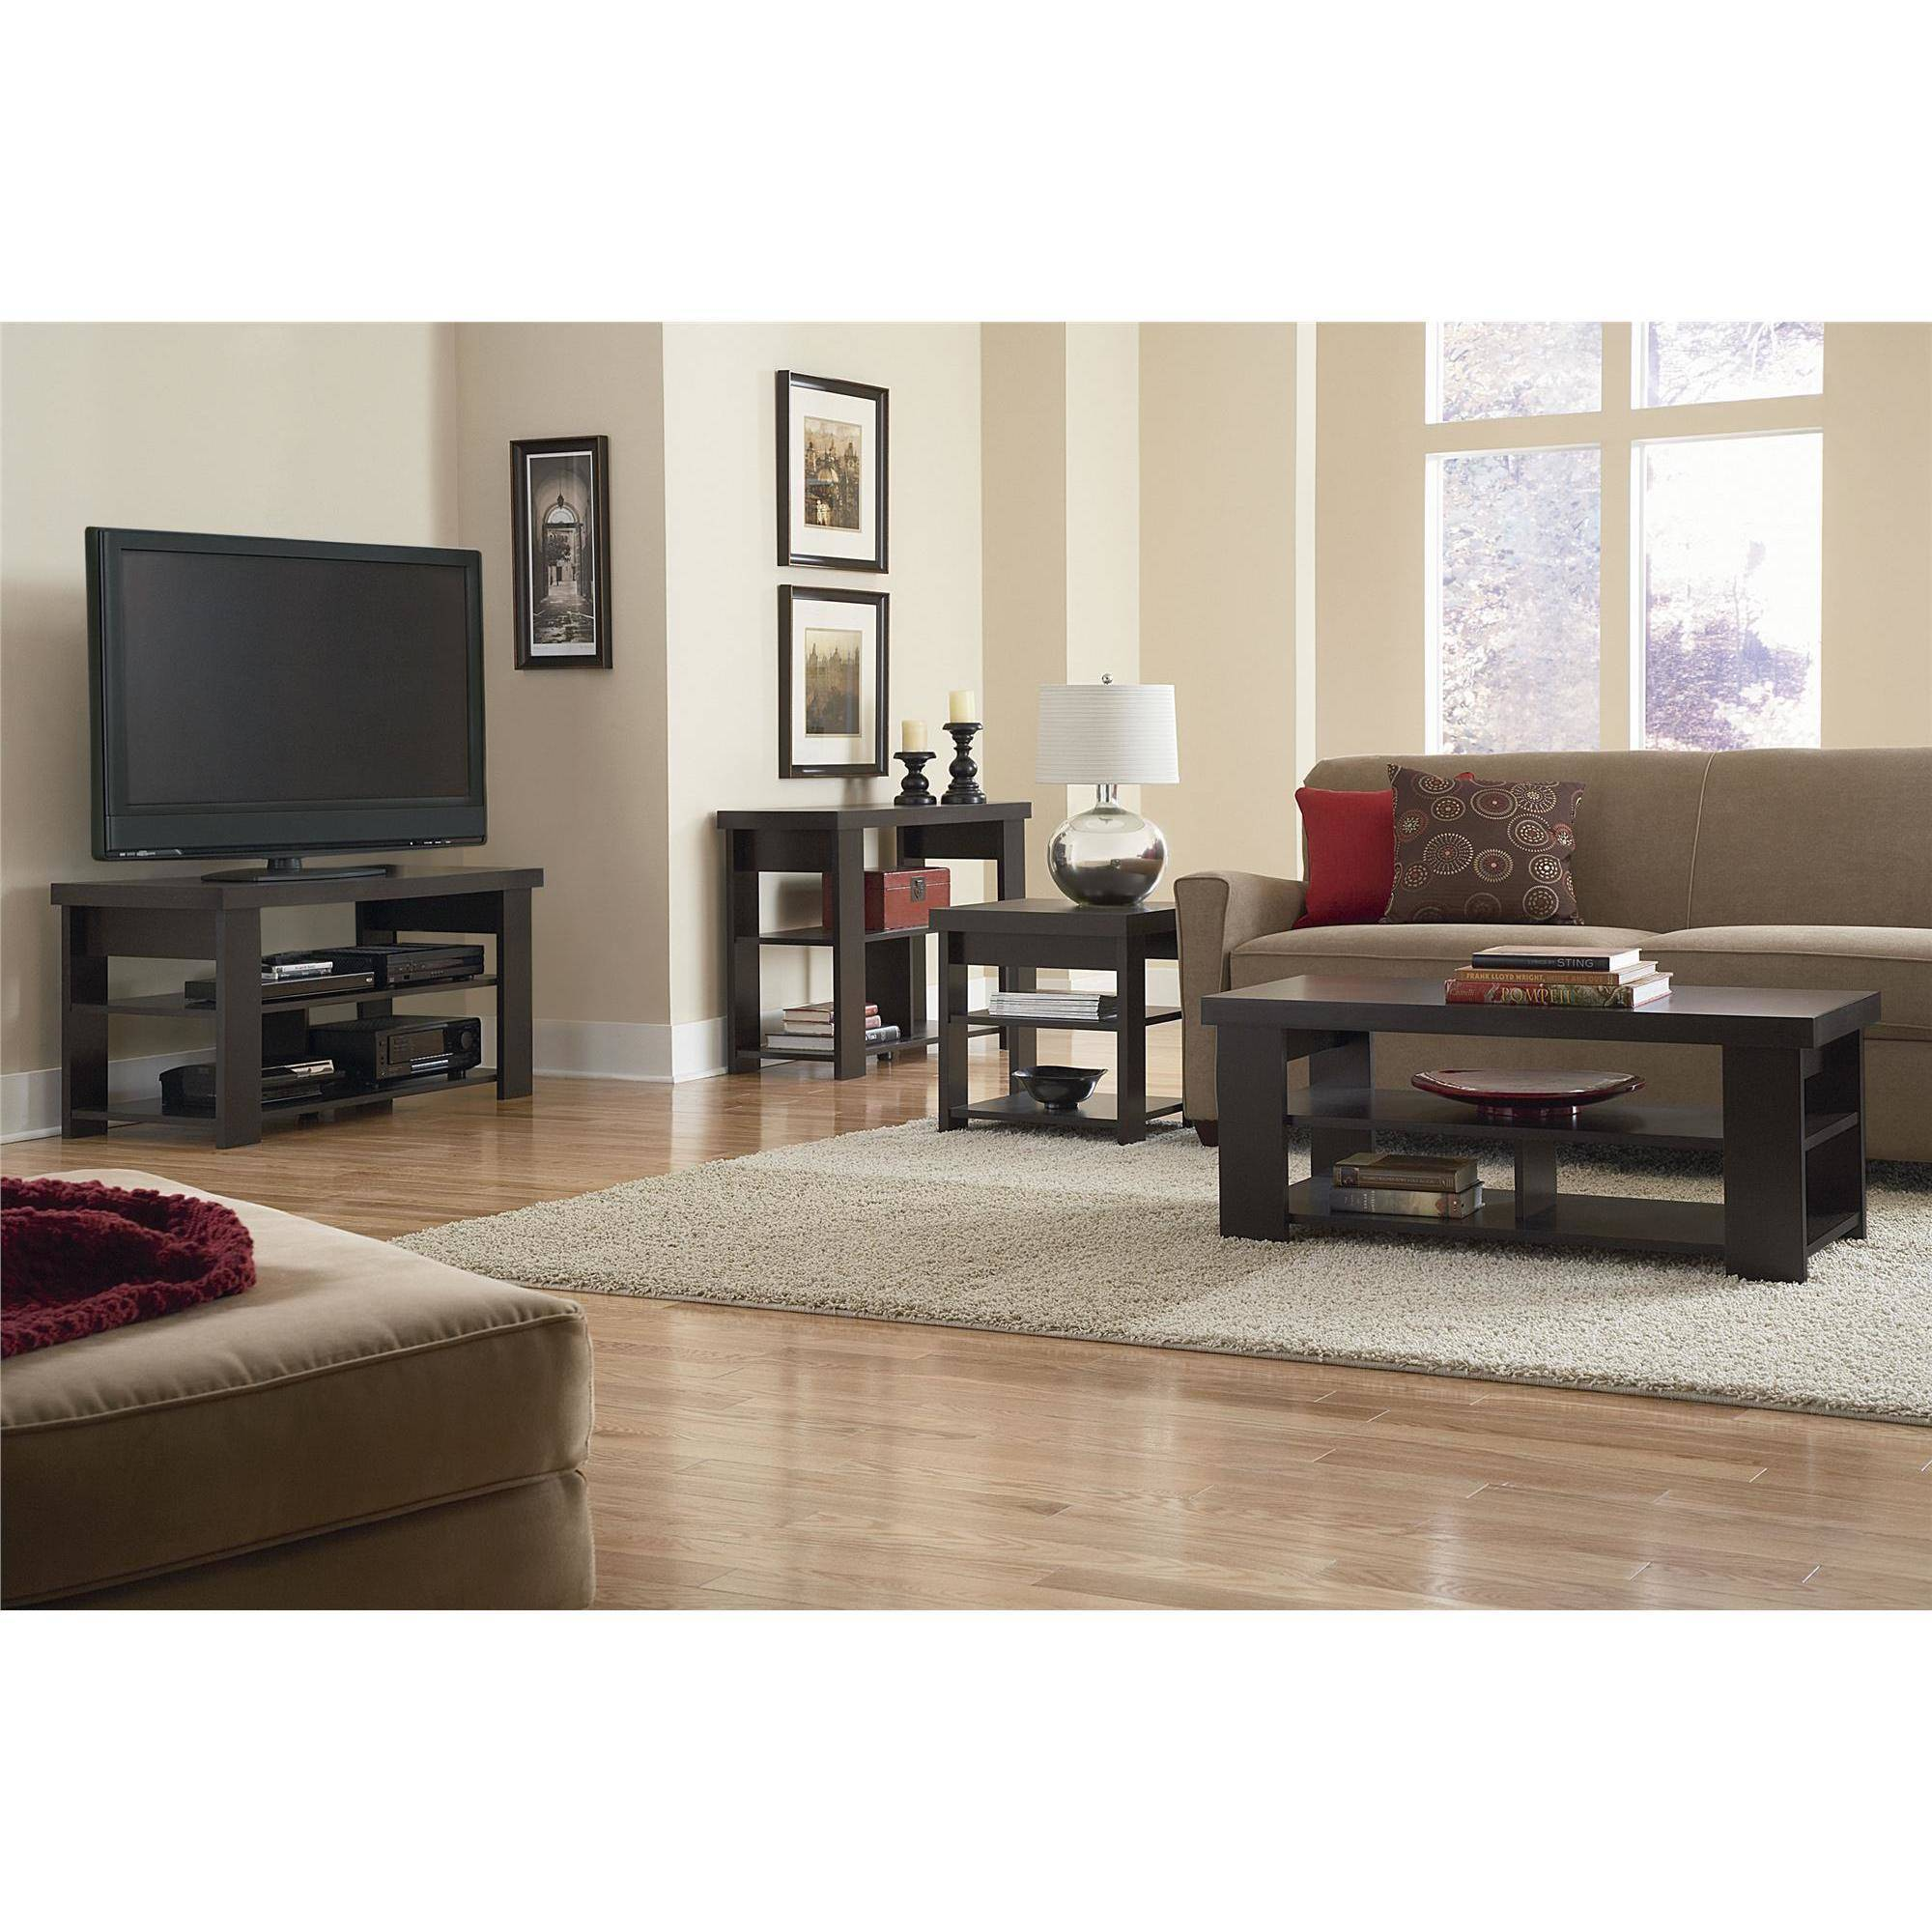 Ameriwood home jensen coffee table multiple colors walmart com